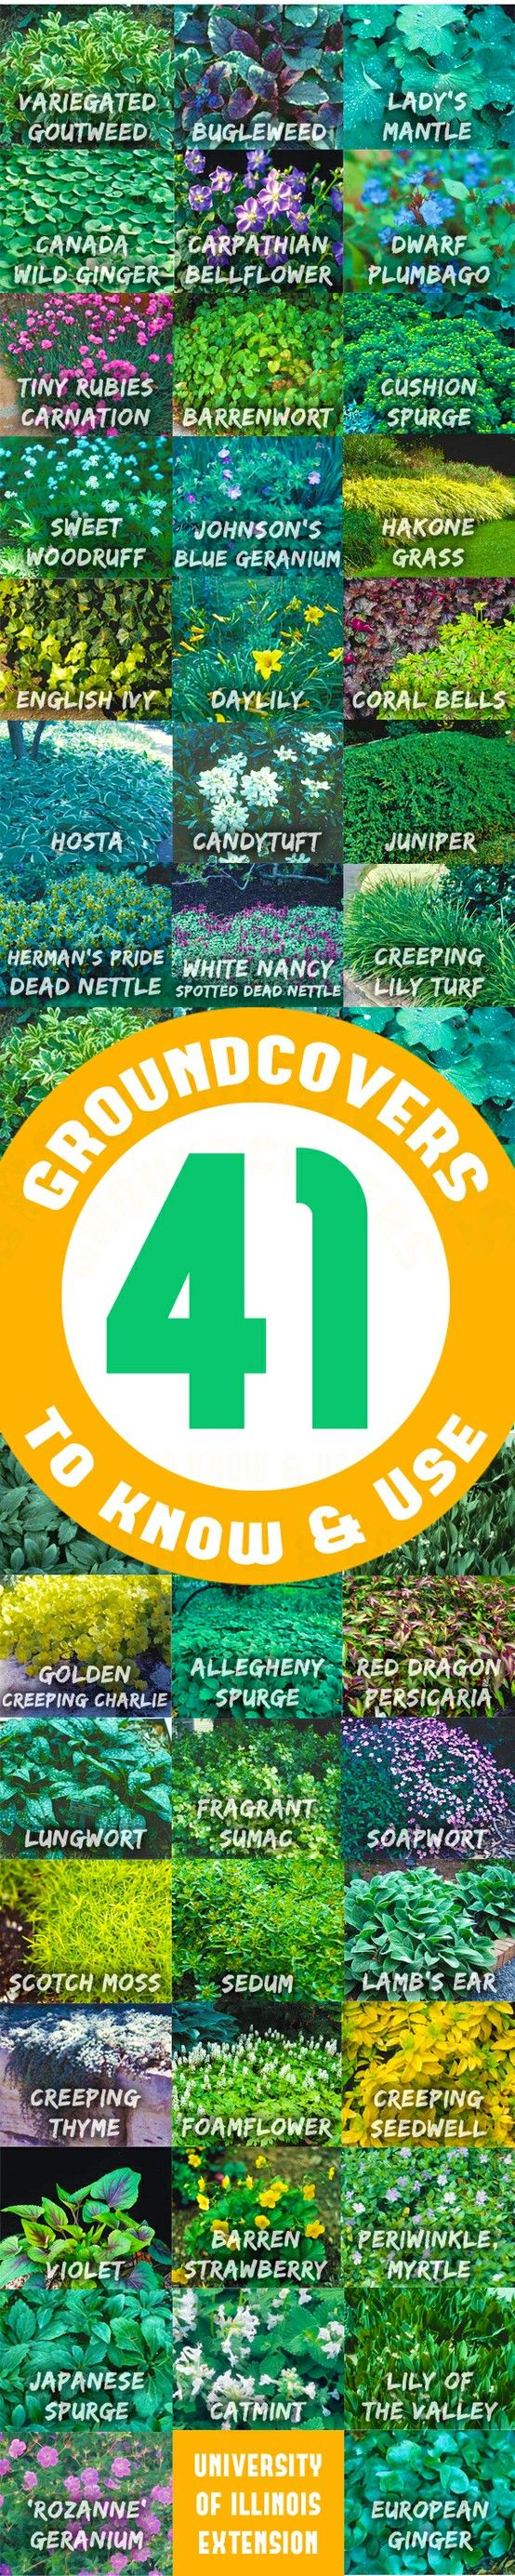 Ground-covers to Know & Use